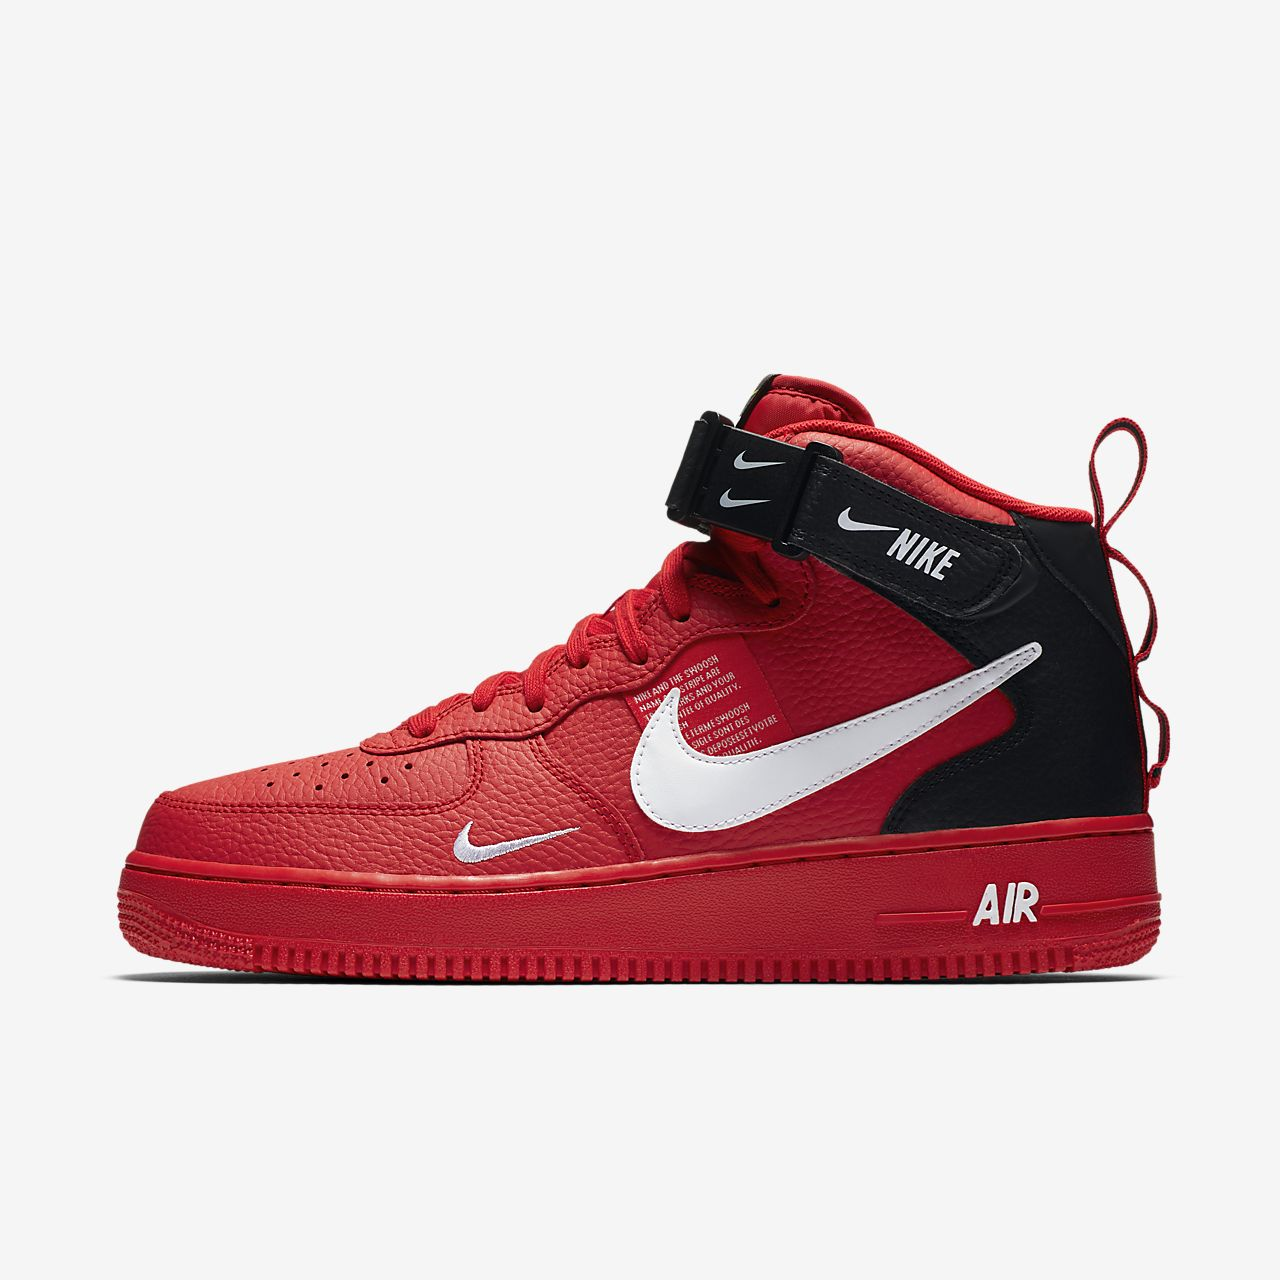 757345c6c7ed76 Nike Air Force 1 07 Mid LV8 Men s Shoe. Nike.com GB